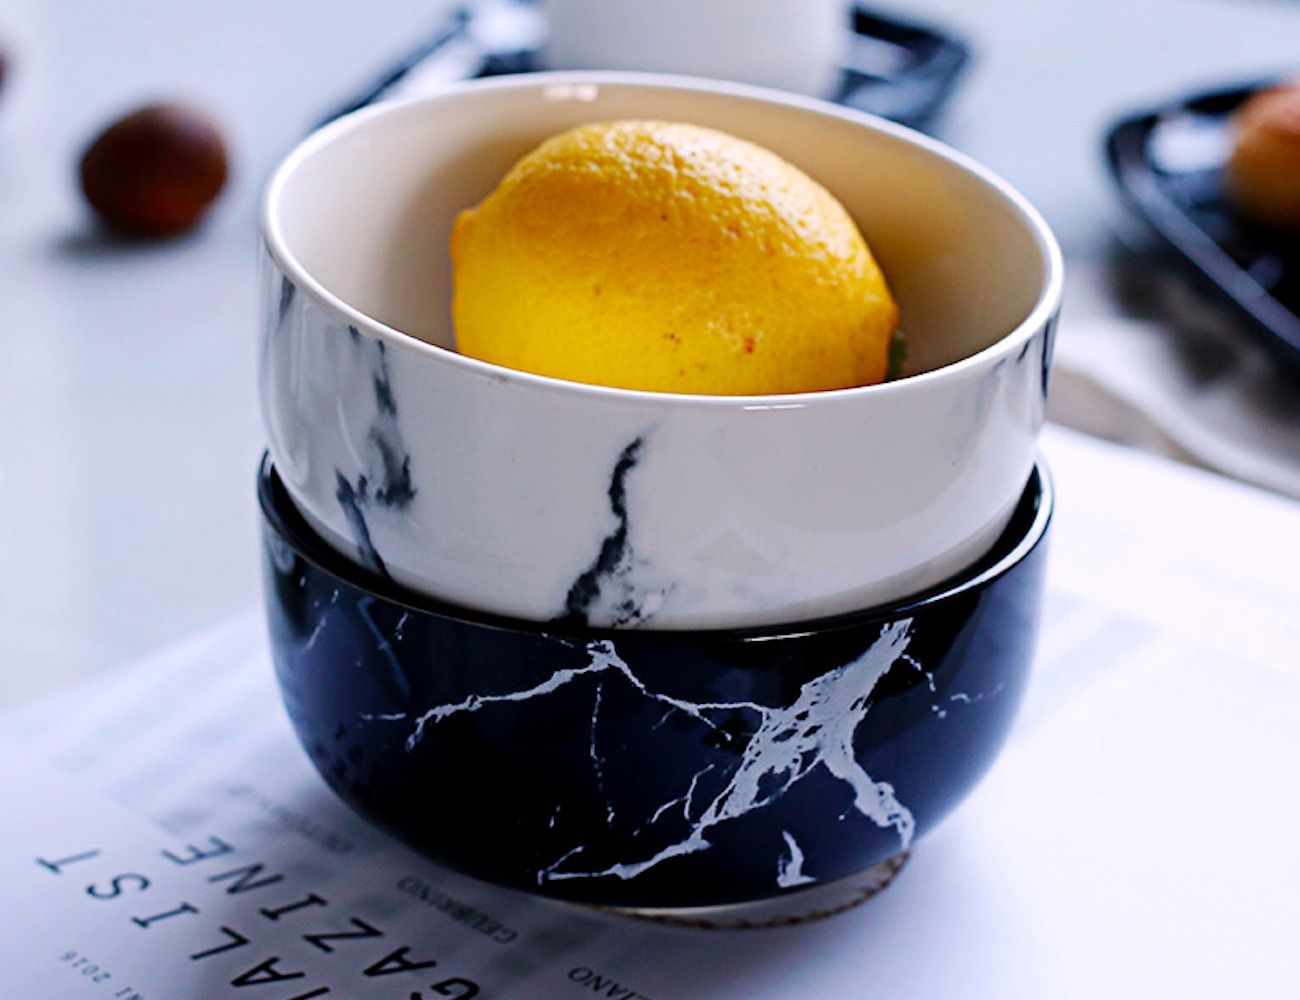 Marbled Ceramic Dinner Bowl adds a twist to your crockery